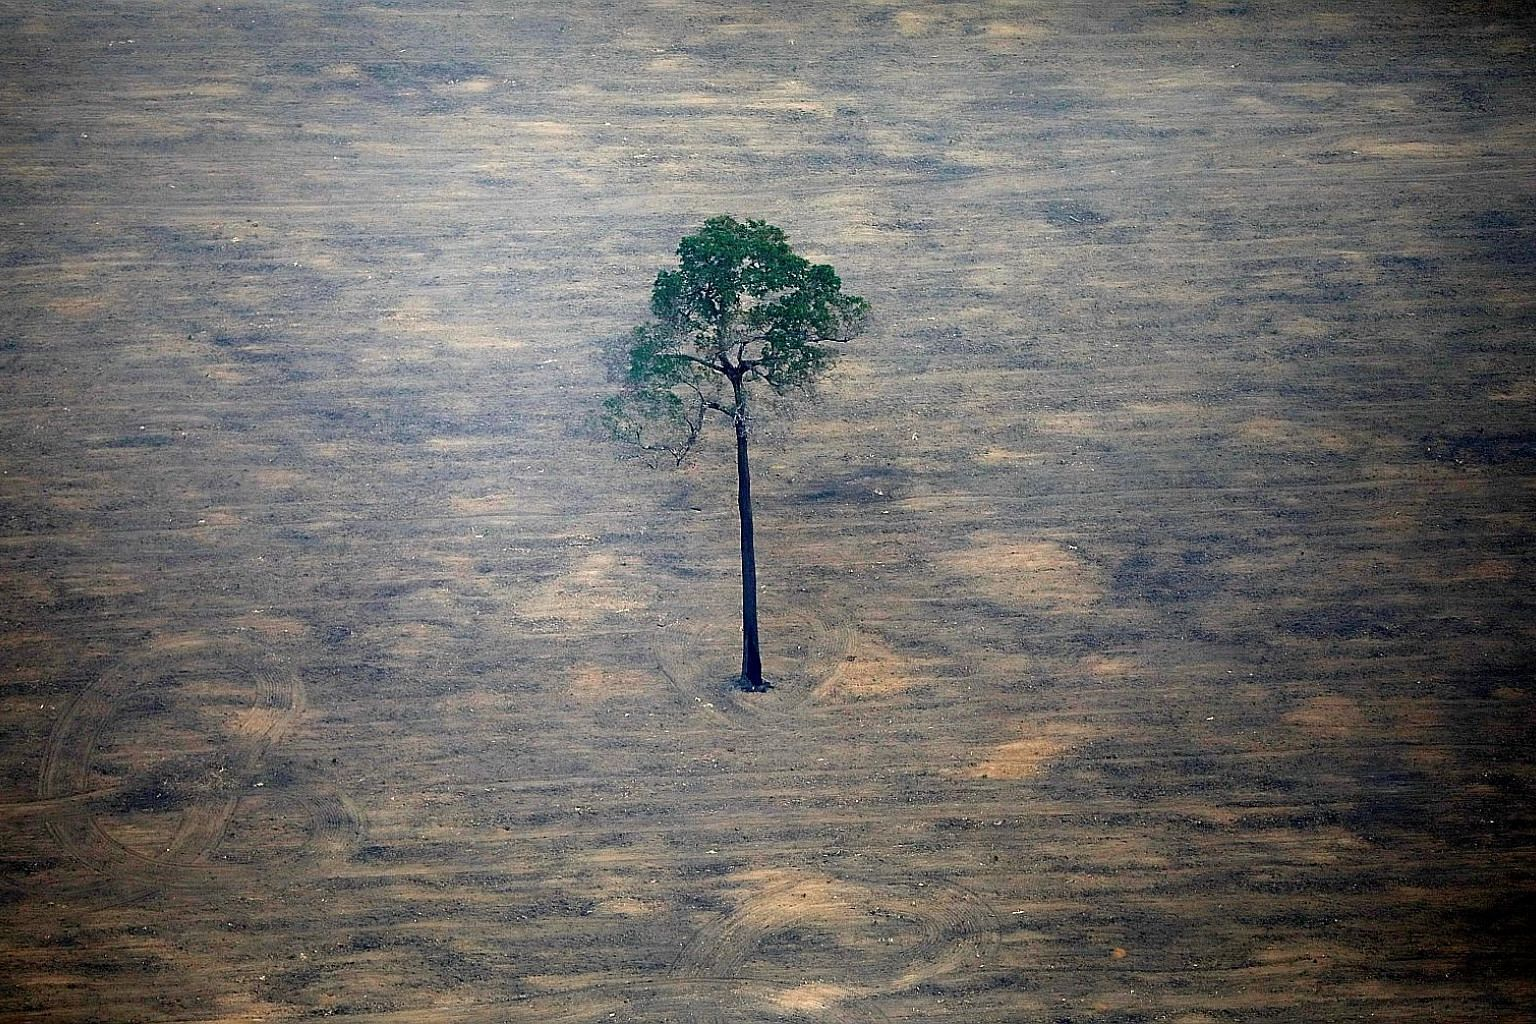 """A deforested plot of the Amazon in Brazil. Greenhouse gas reduction targets are still reachable, UN Secretary-General Antonio Guterres said, even as he warned that the world was """"losing the race"""" to avert climate disaster. PHOTO: REUTERS"""